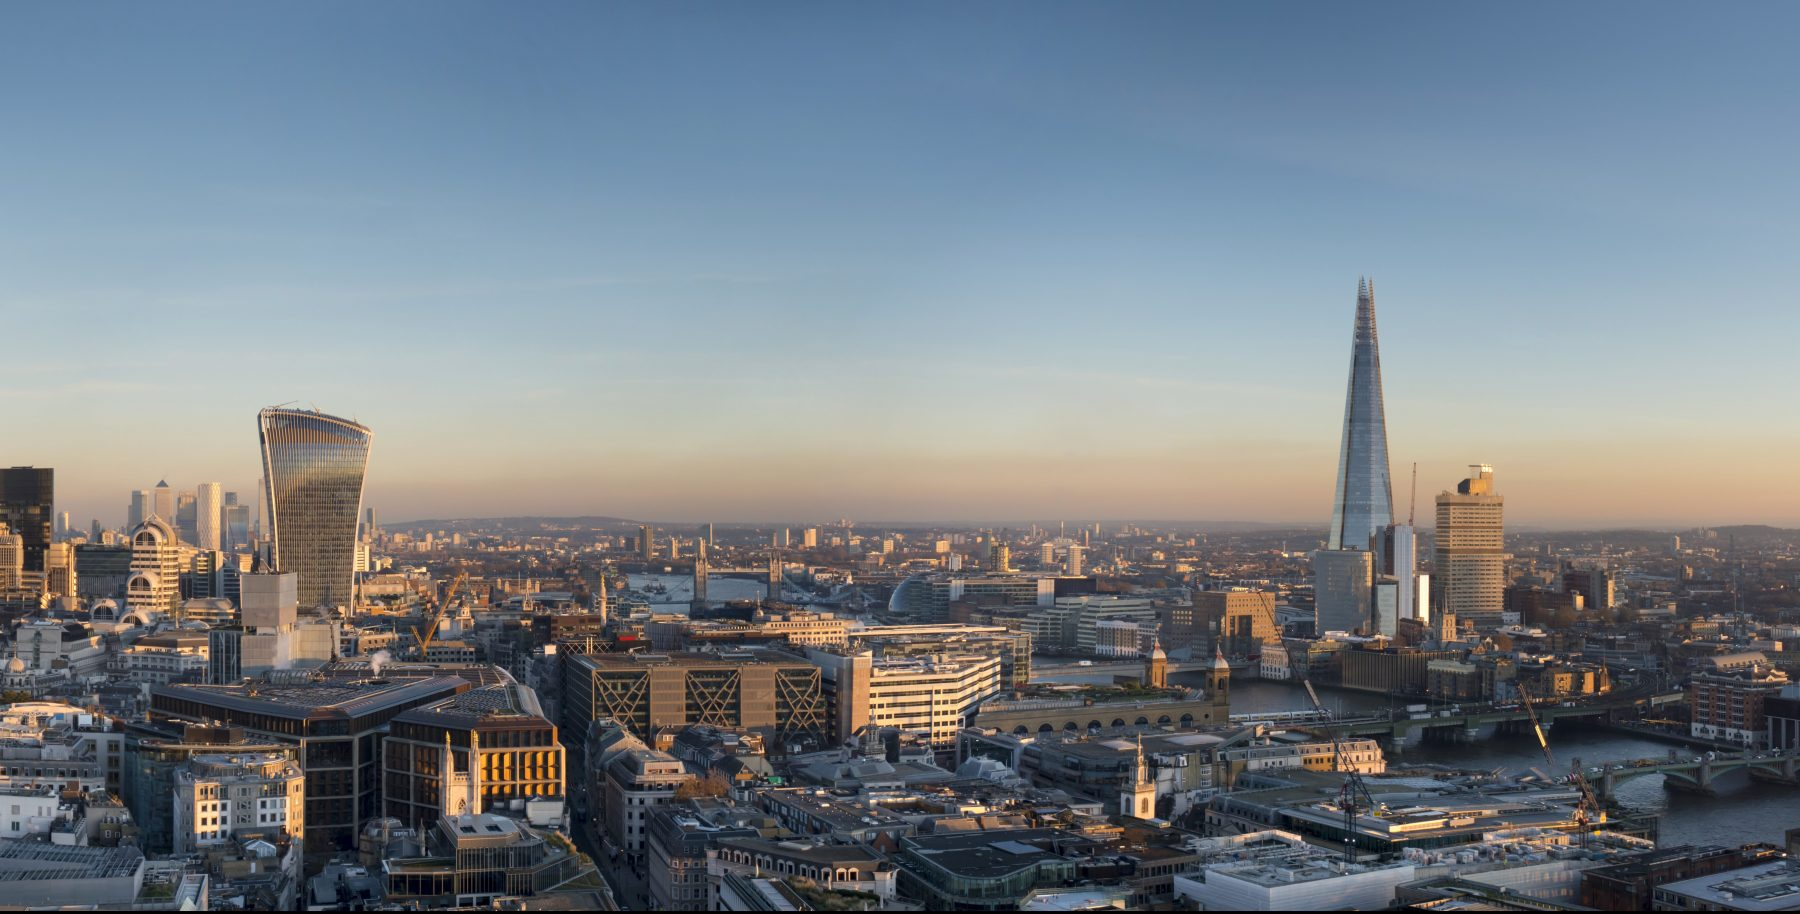 London city and the shard